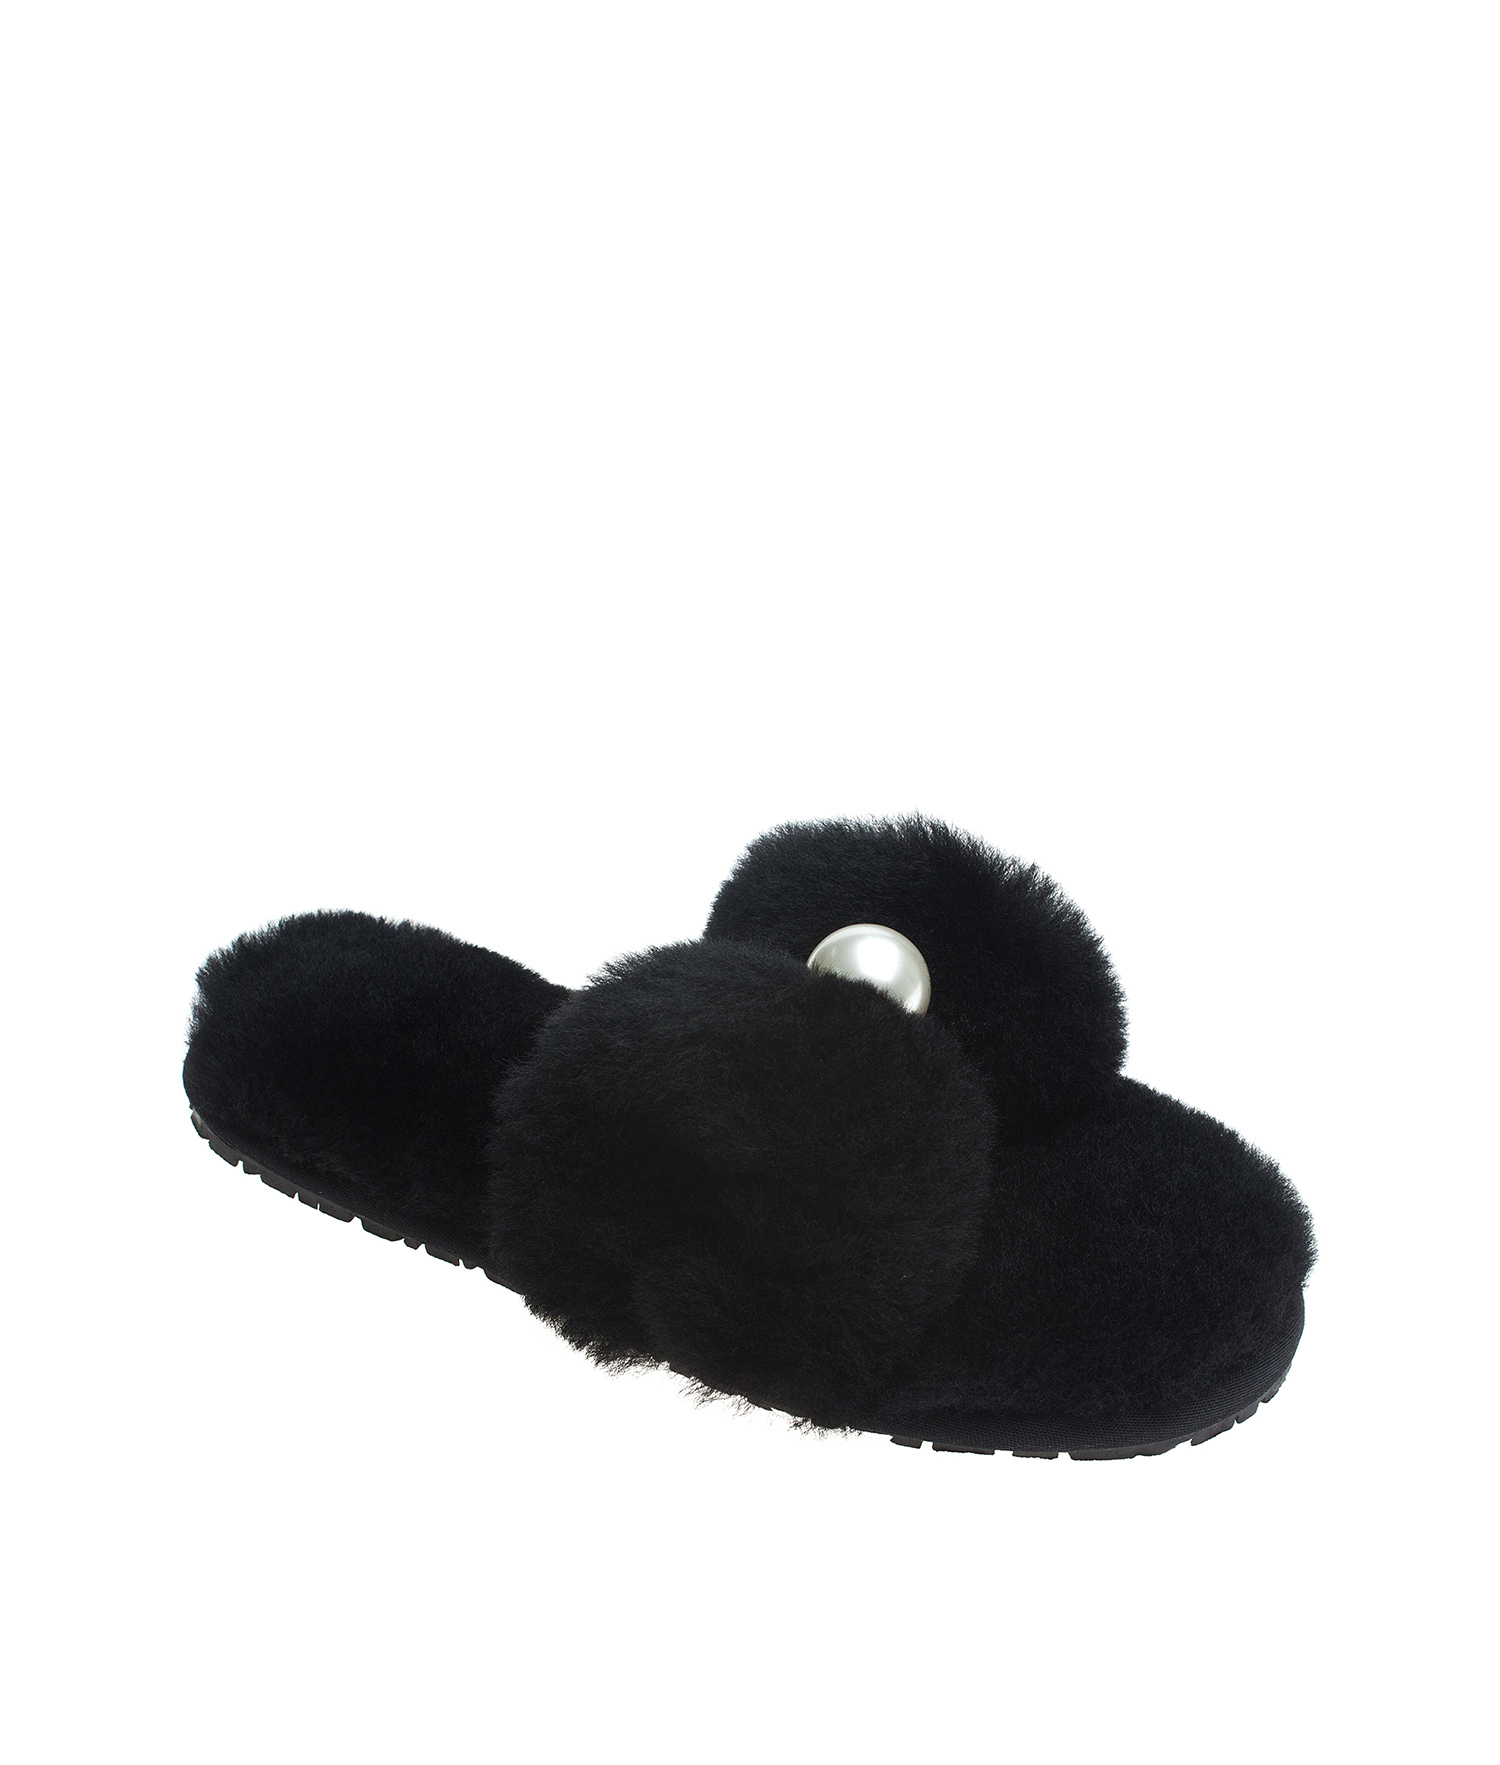 110a3dcdc1a AnnaKastle Womens Faux Pearl Bow Fluffy Slide Slippers Black